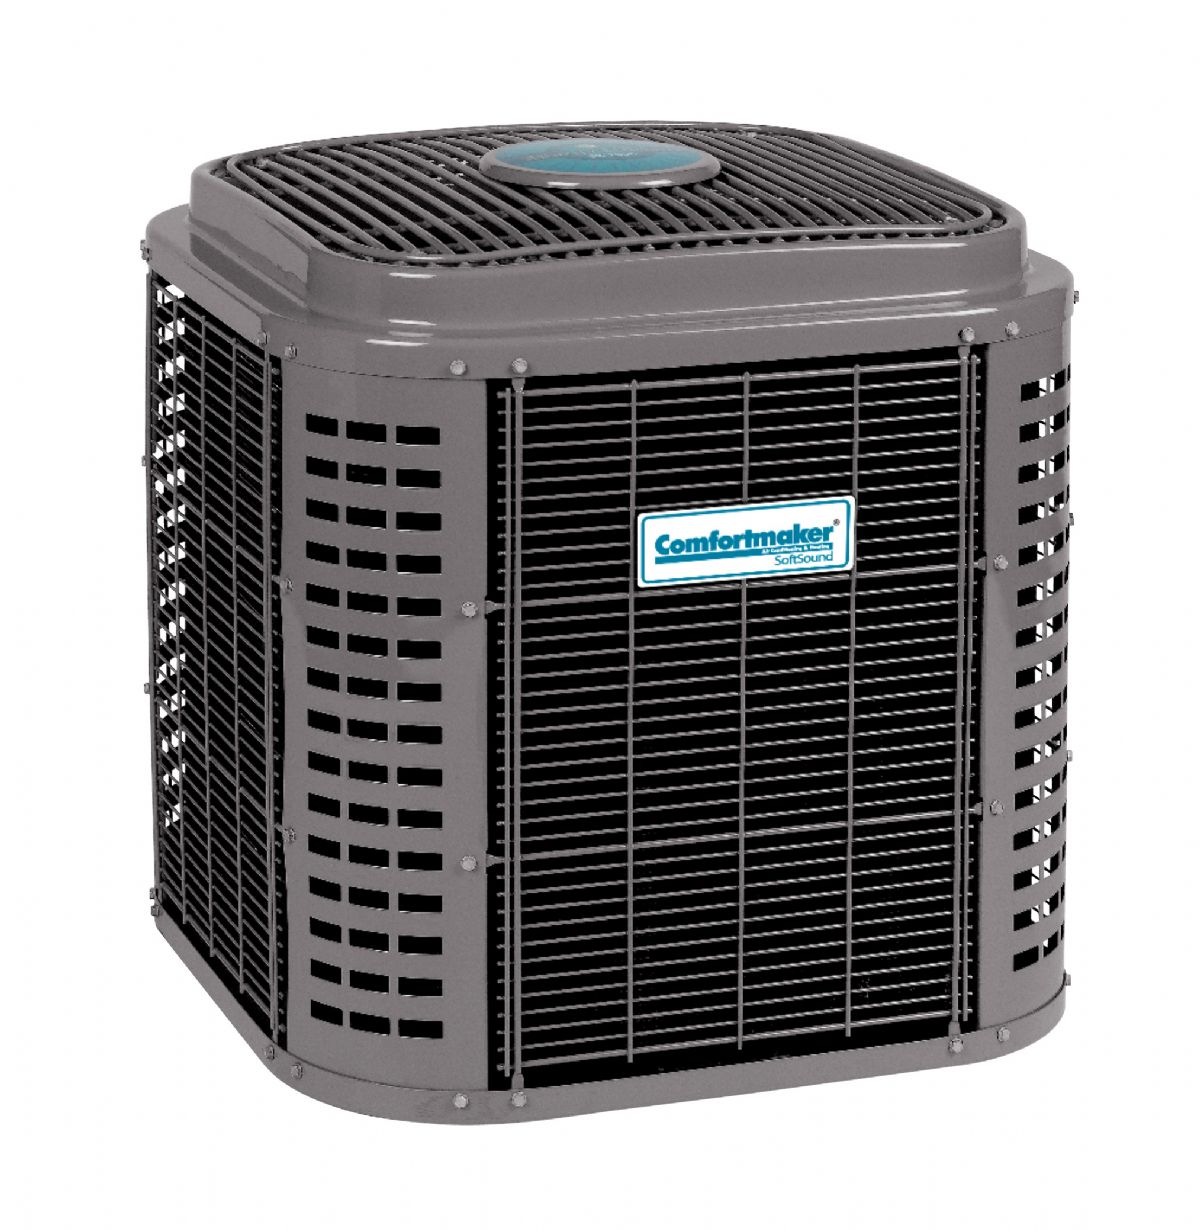 #1A82A0 Buckridge Inc. Plumbing Heating And Air Conditioning  Brand New 12171 Heaters And Air Conditioners images with 1200x1231 px on helpvideos.info - Air Conditioners, Air Coolers and more